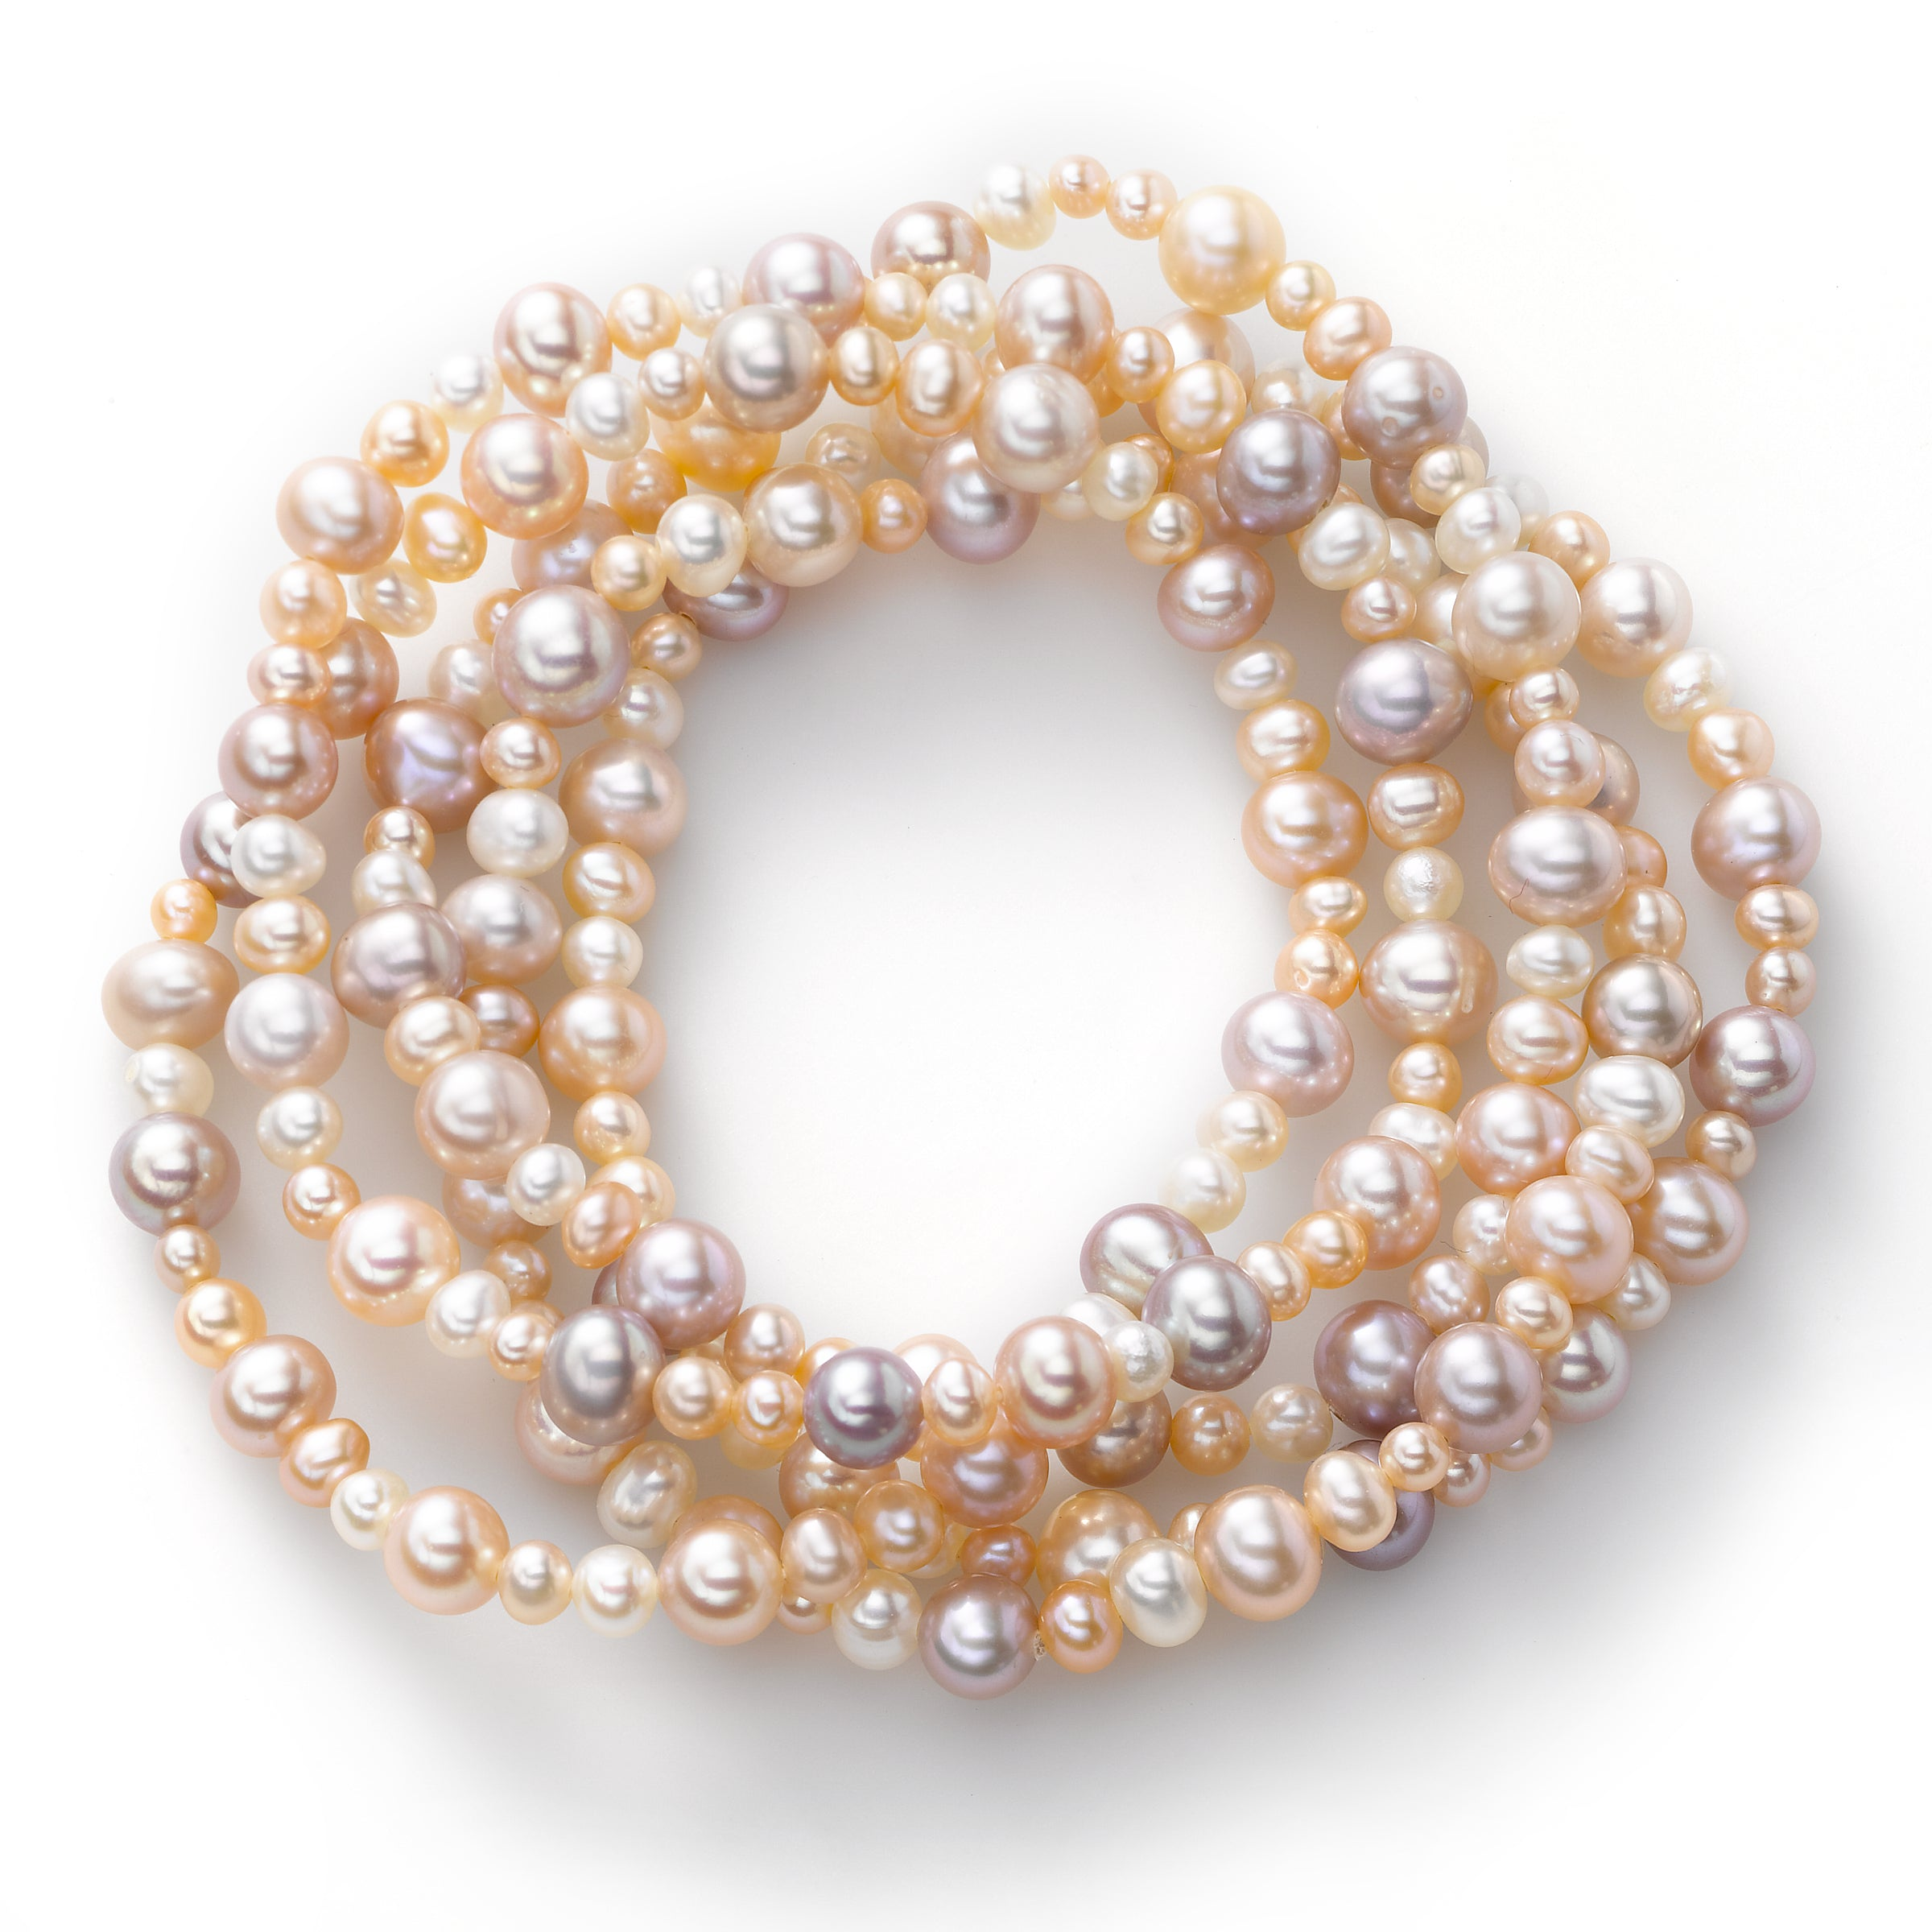 Natural Color Pink Cultured Freshwater Pearl, 3.5 - 6.5MM, Stretch Bracelets, Set of 5